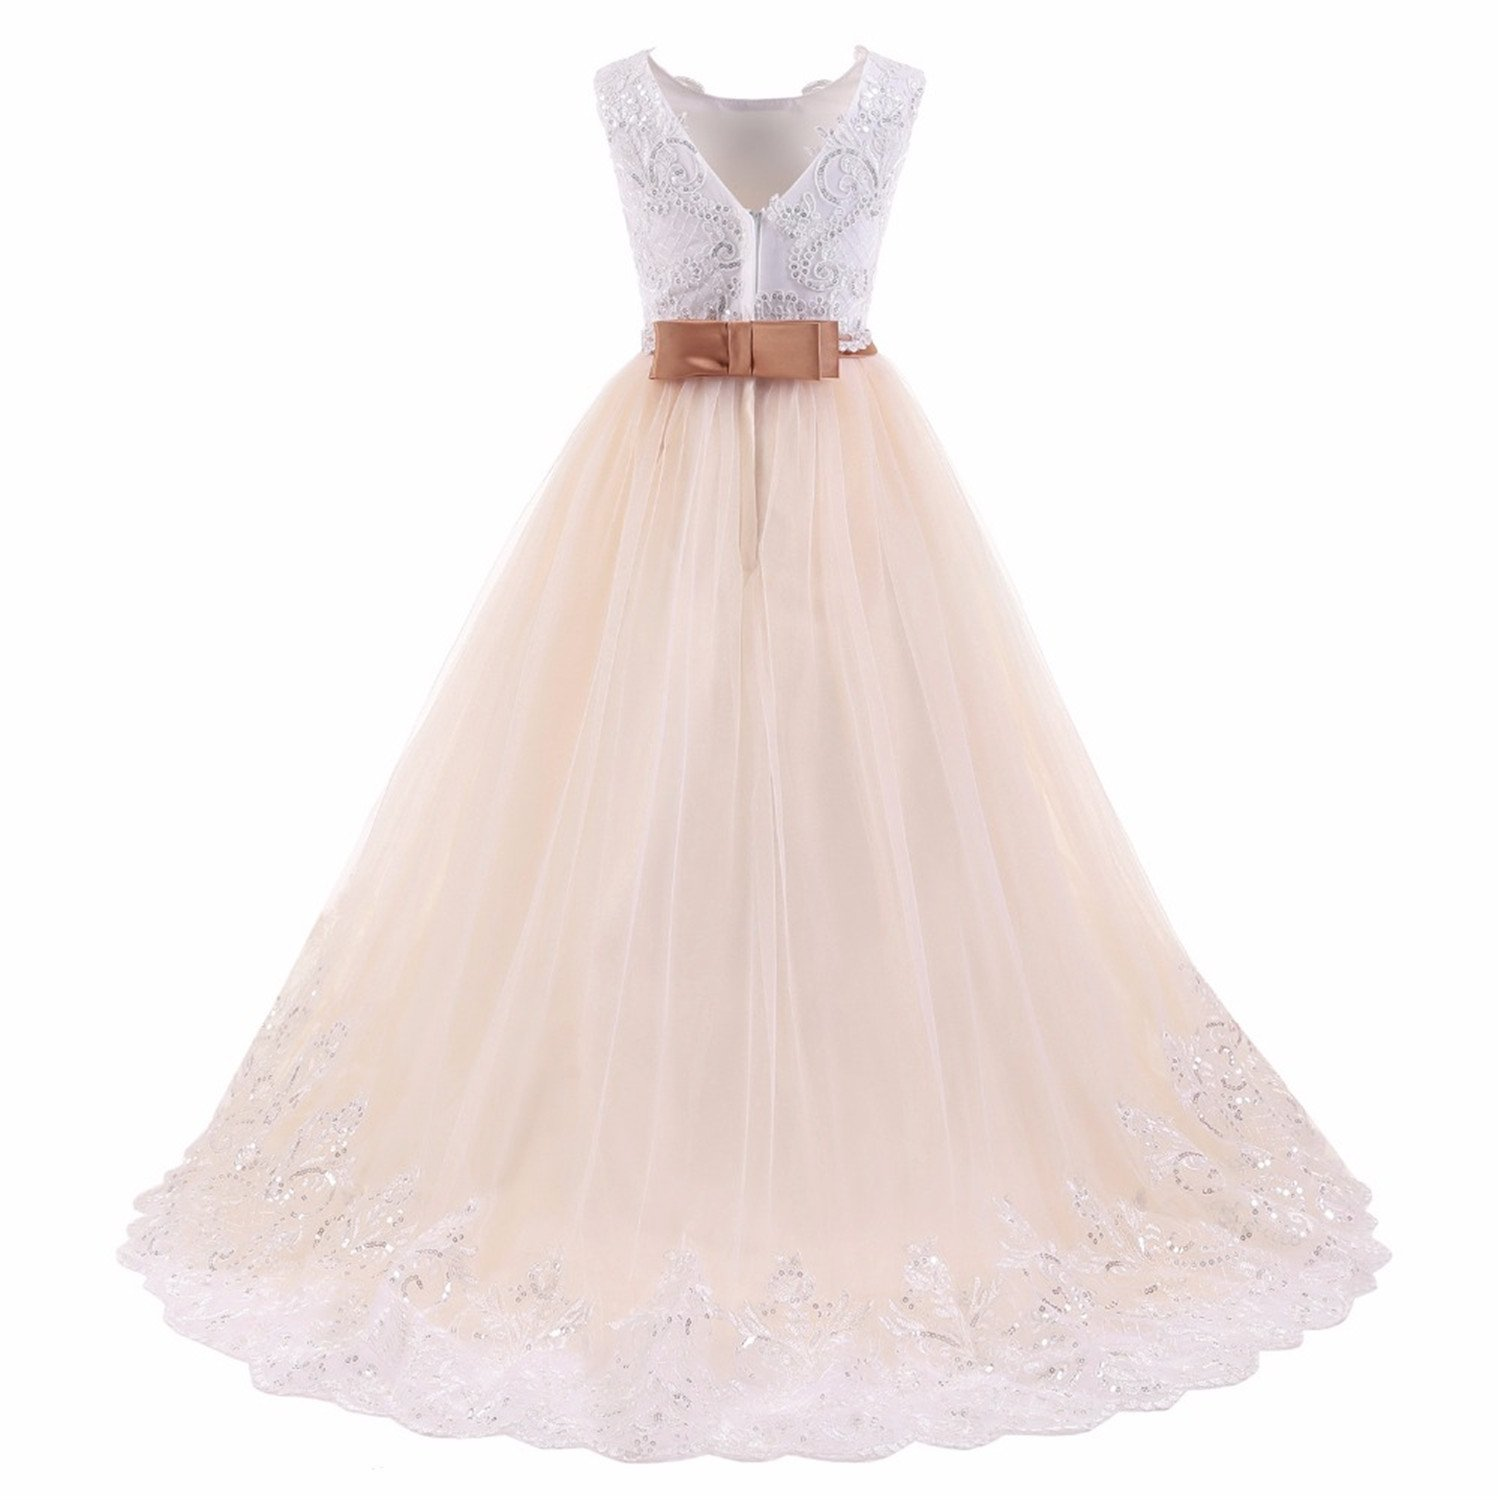 191ae3ee3 Amazon.com: ylovego Light Champagne A Line Lace Bow for Weddings Girl  Flower Girl Dress 2018 Party Dress Pageant Gown: Clothing